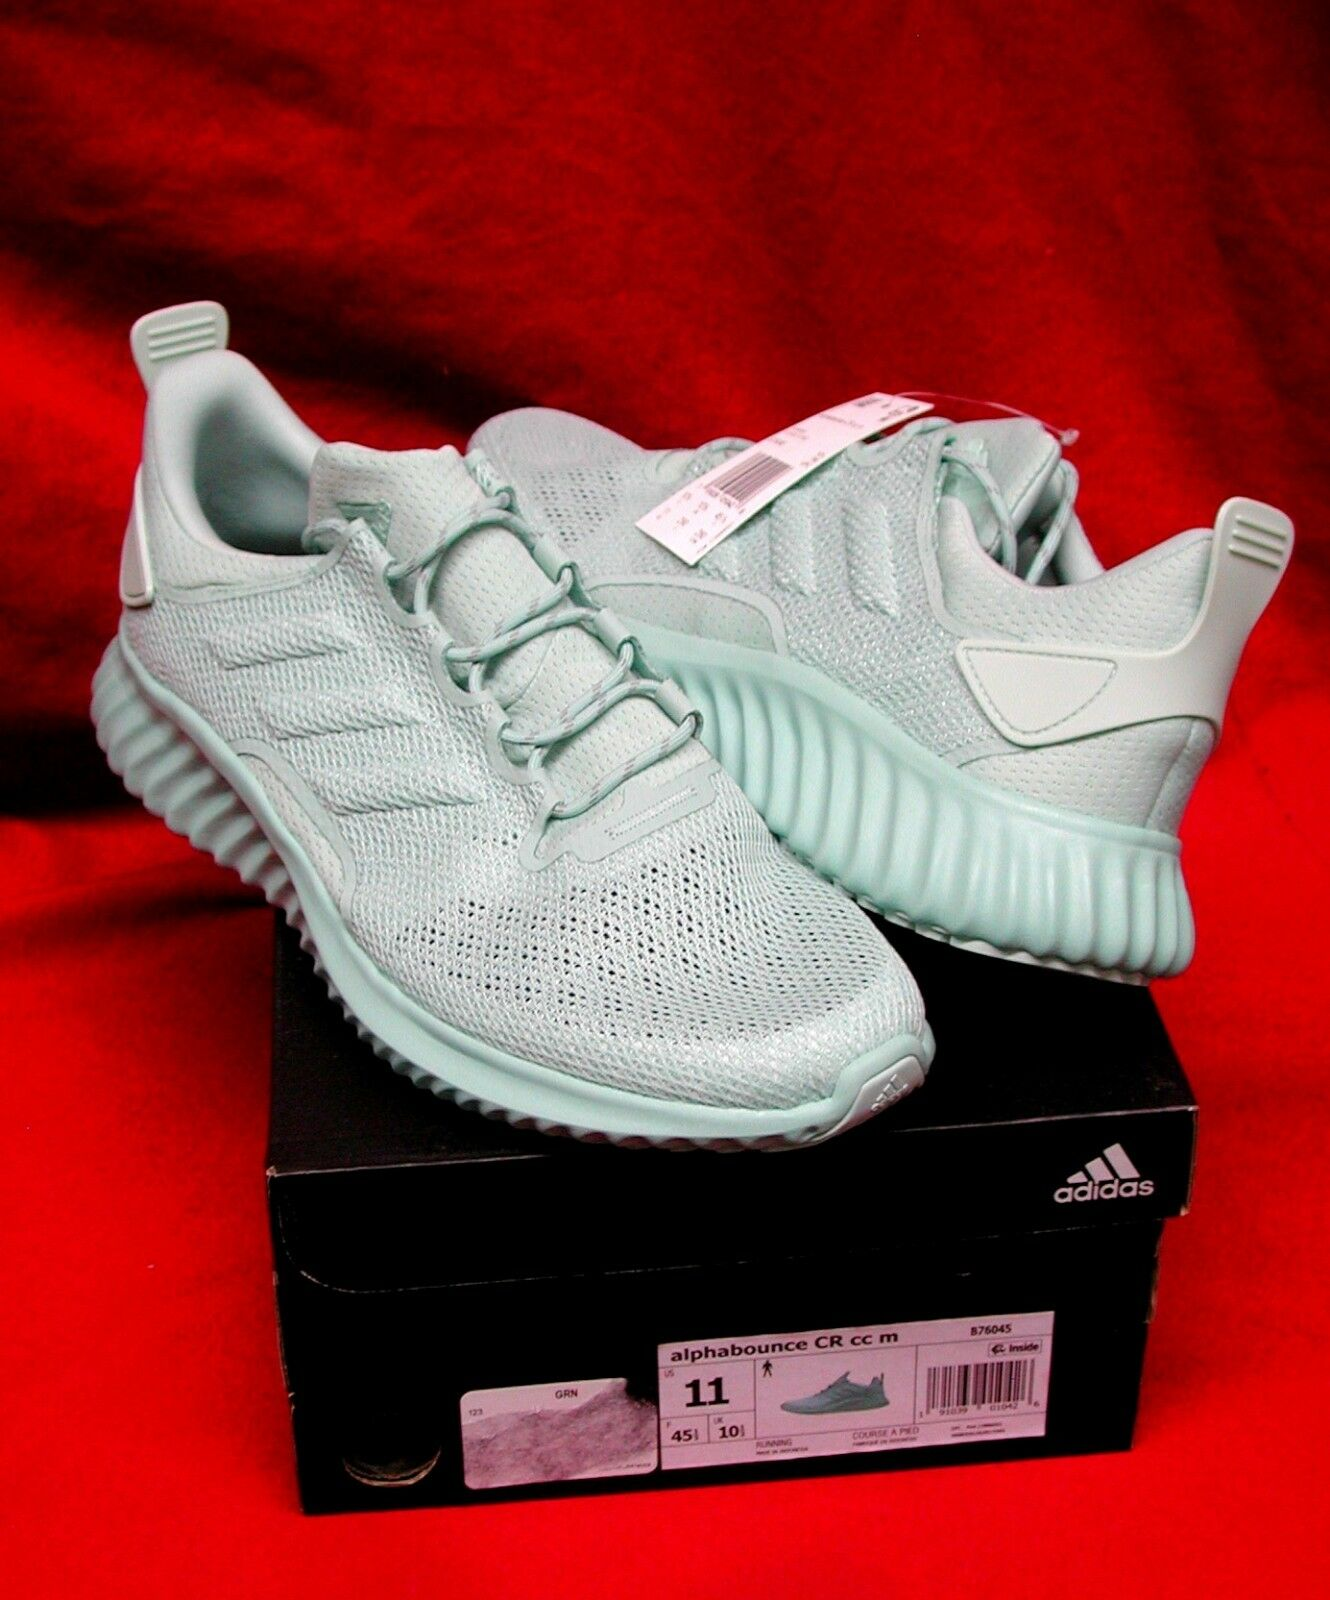 Adidas AlphaBounce City Climacool Running Sneakers Men's Size 11 US [NIB]